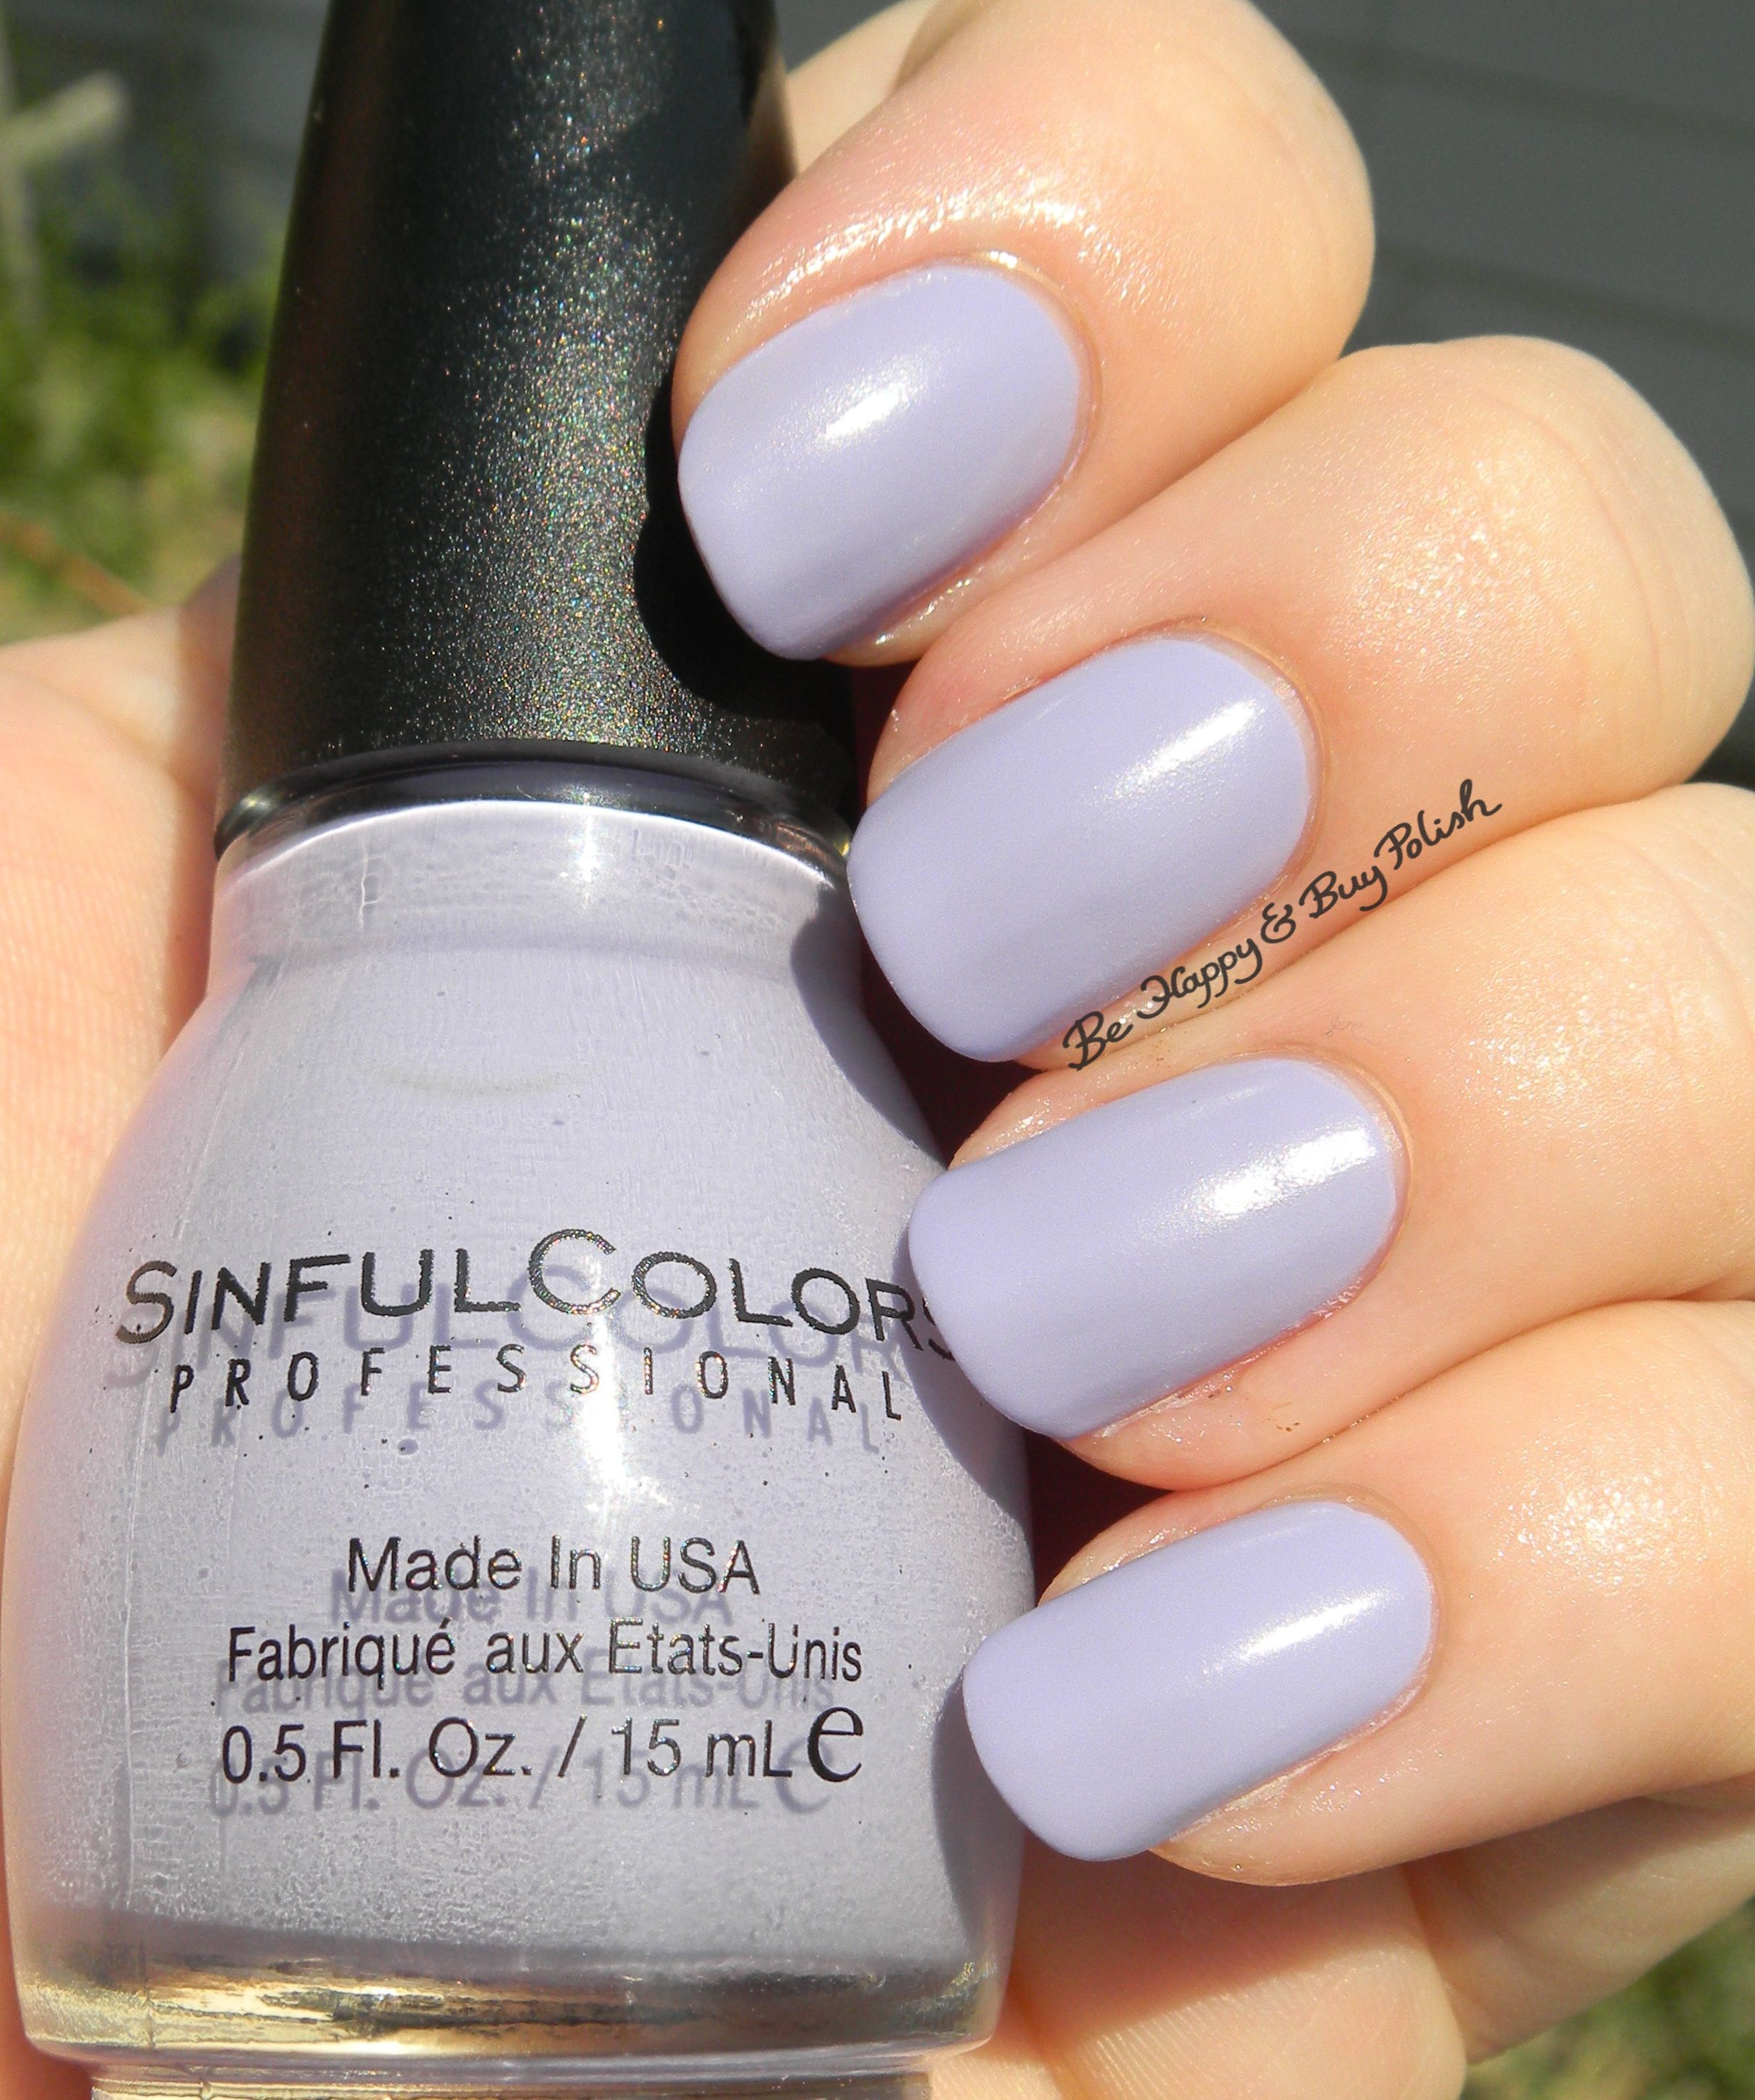 List Of Nail Polish Colors: Sinful Colors A Class Act Nail Polishes (partial